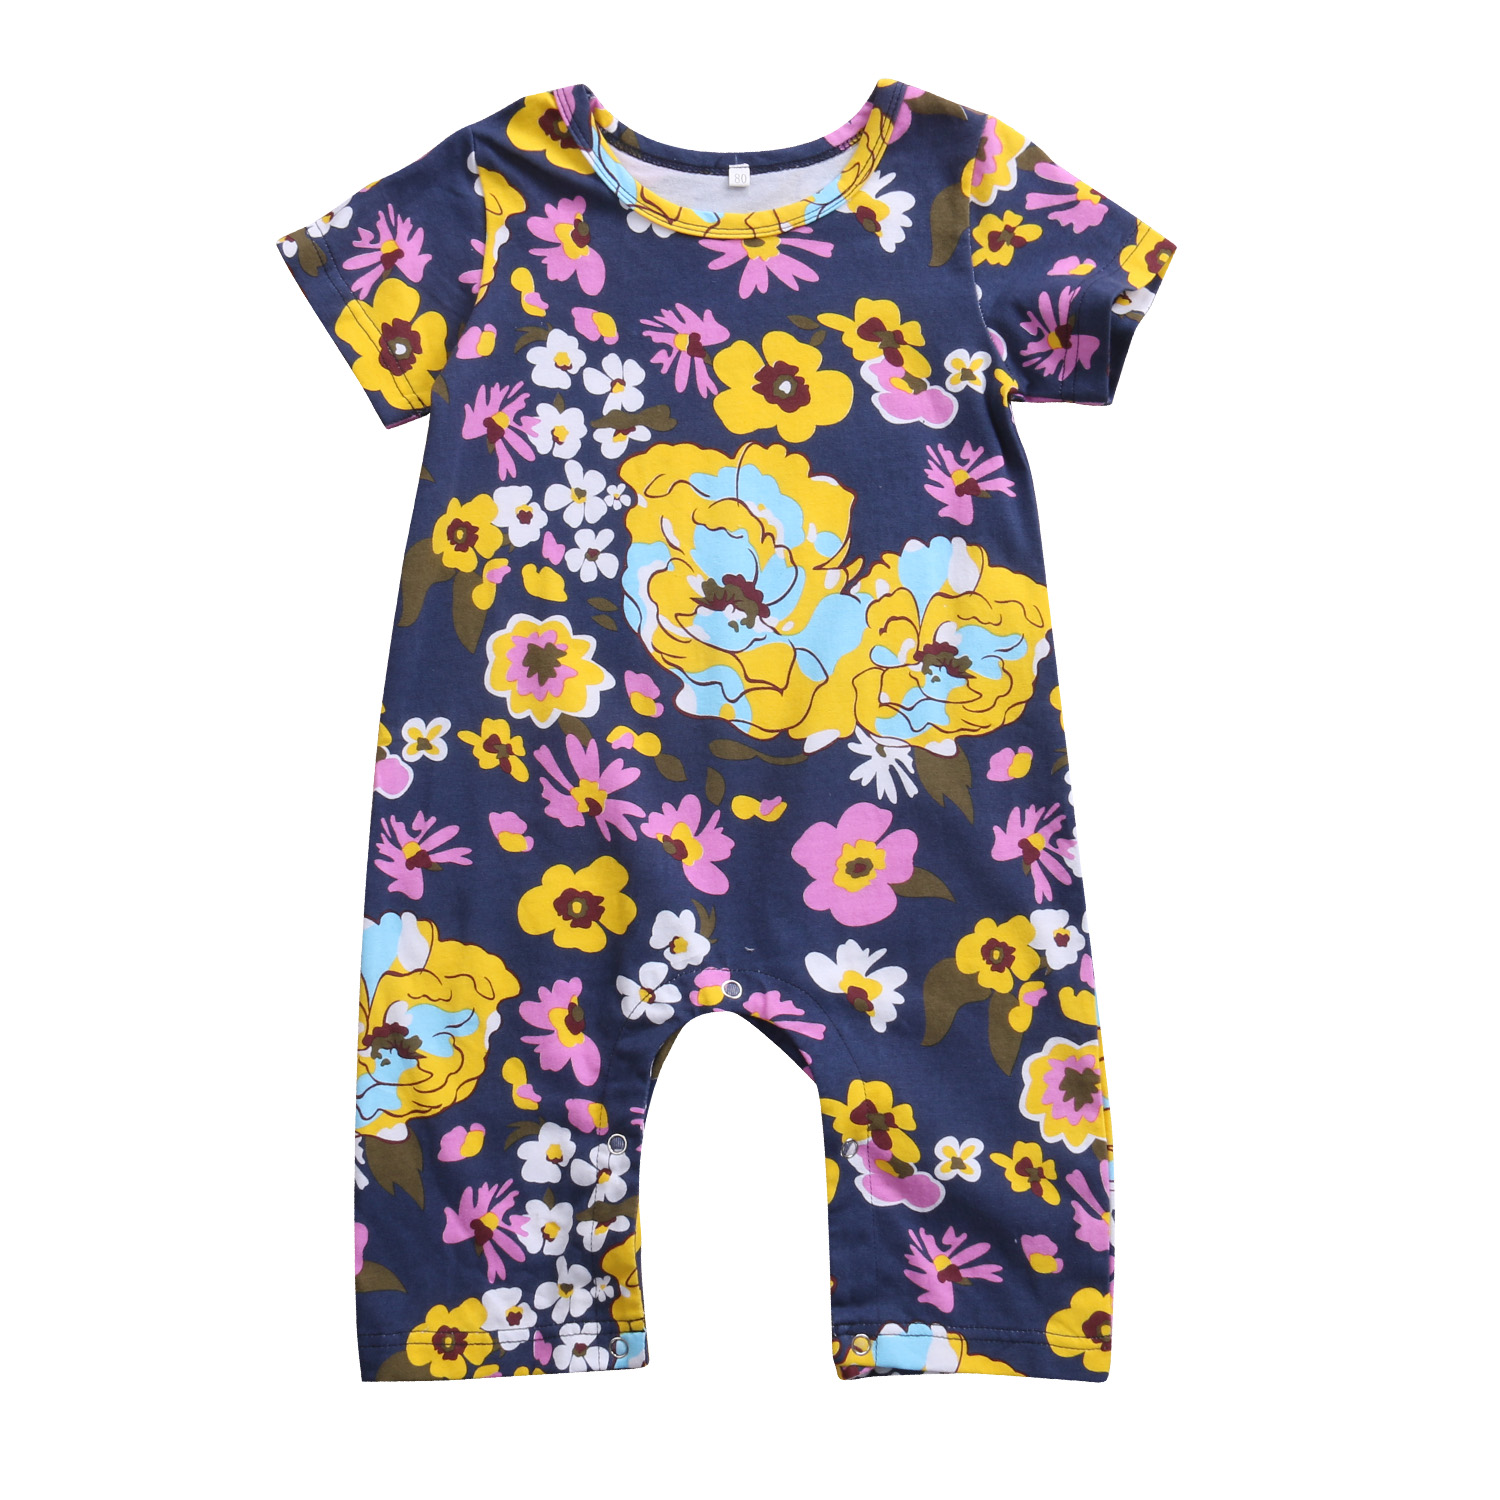 Baby Girls Boys Vintage Floral Romper Jumpsuit Playsuit Outfit Newborn Toddler Clothes 0-3Y